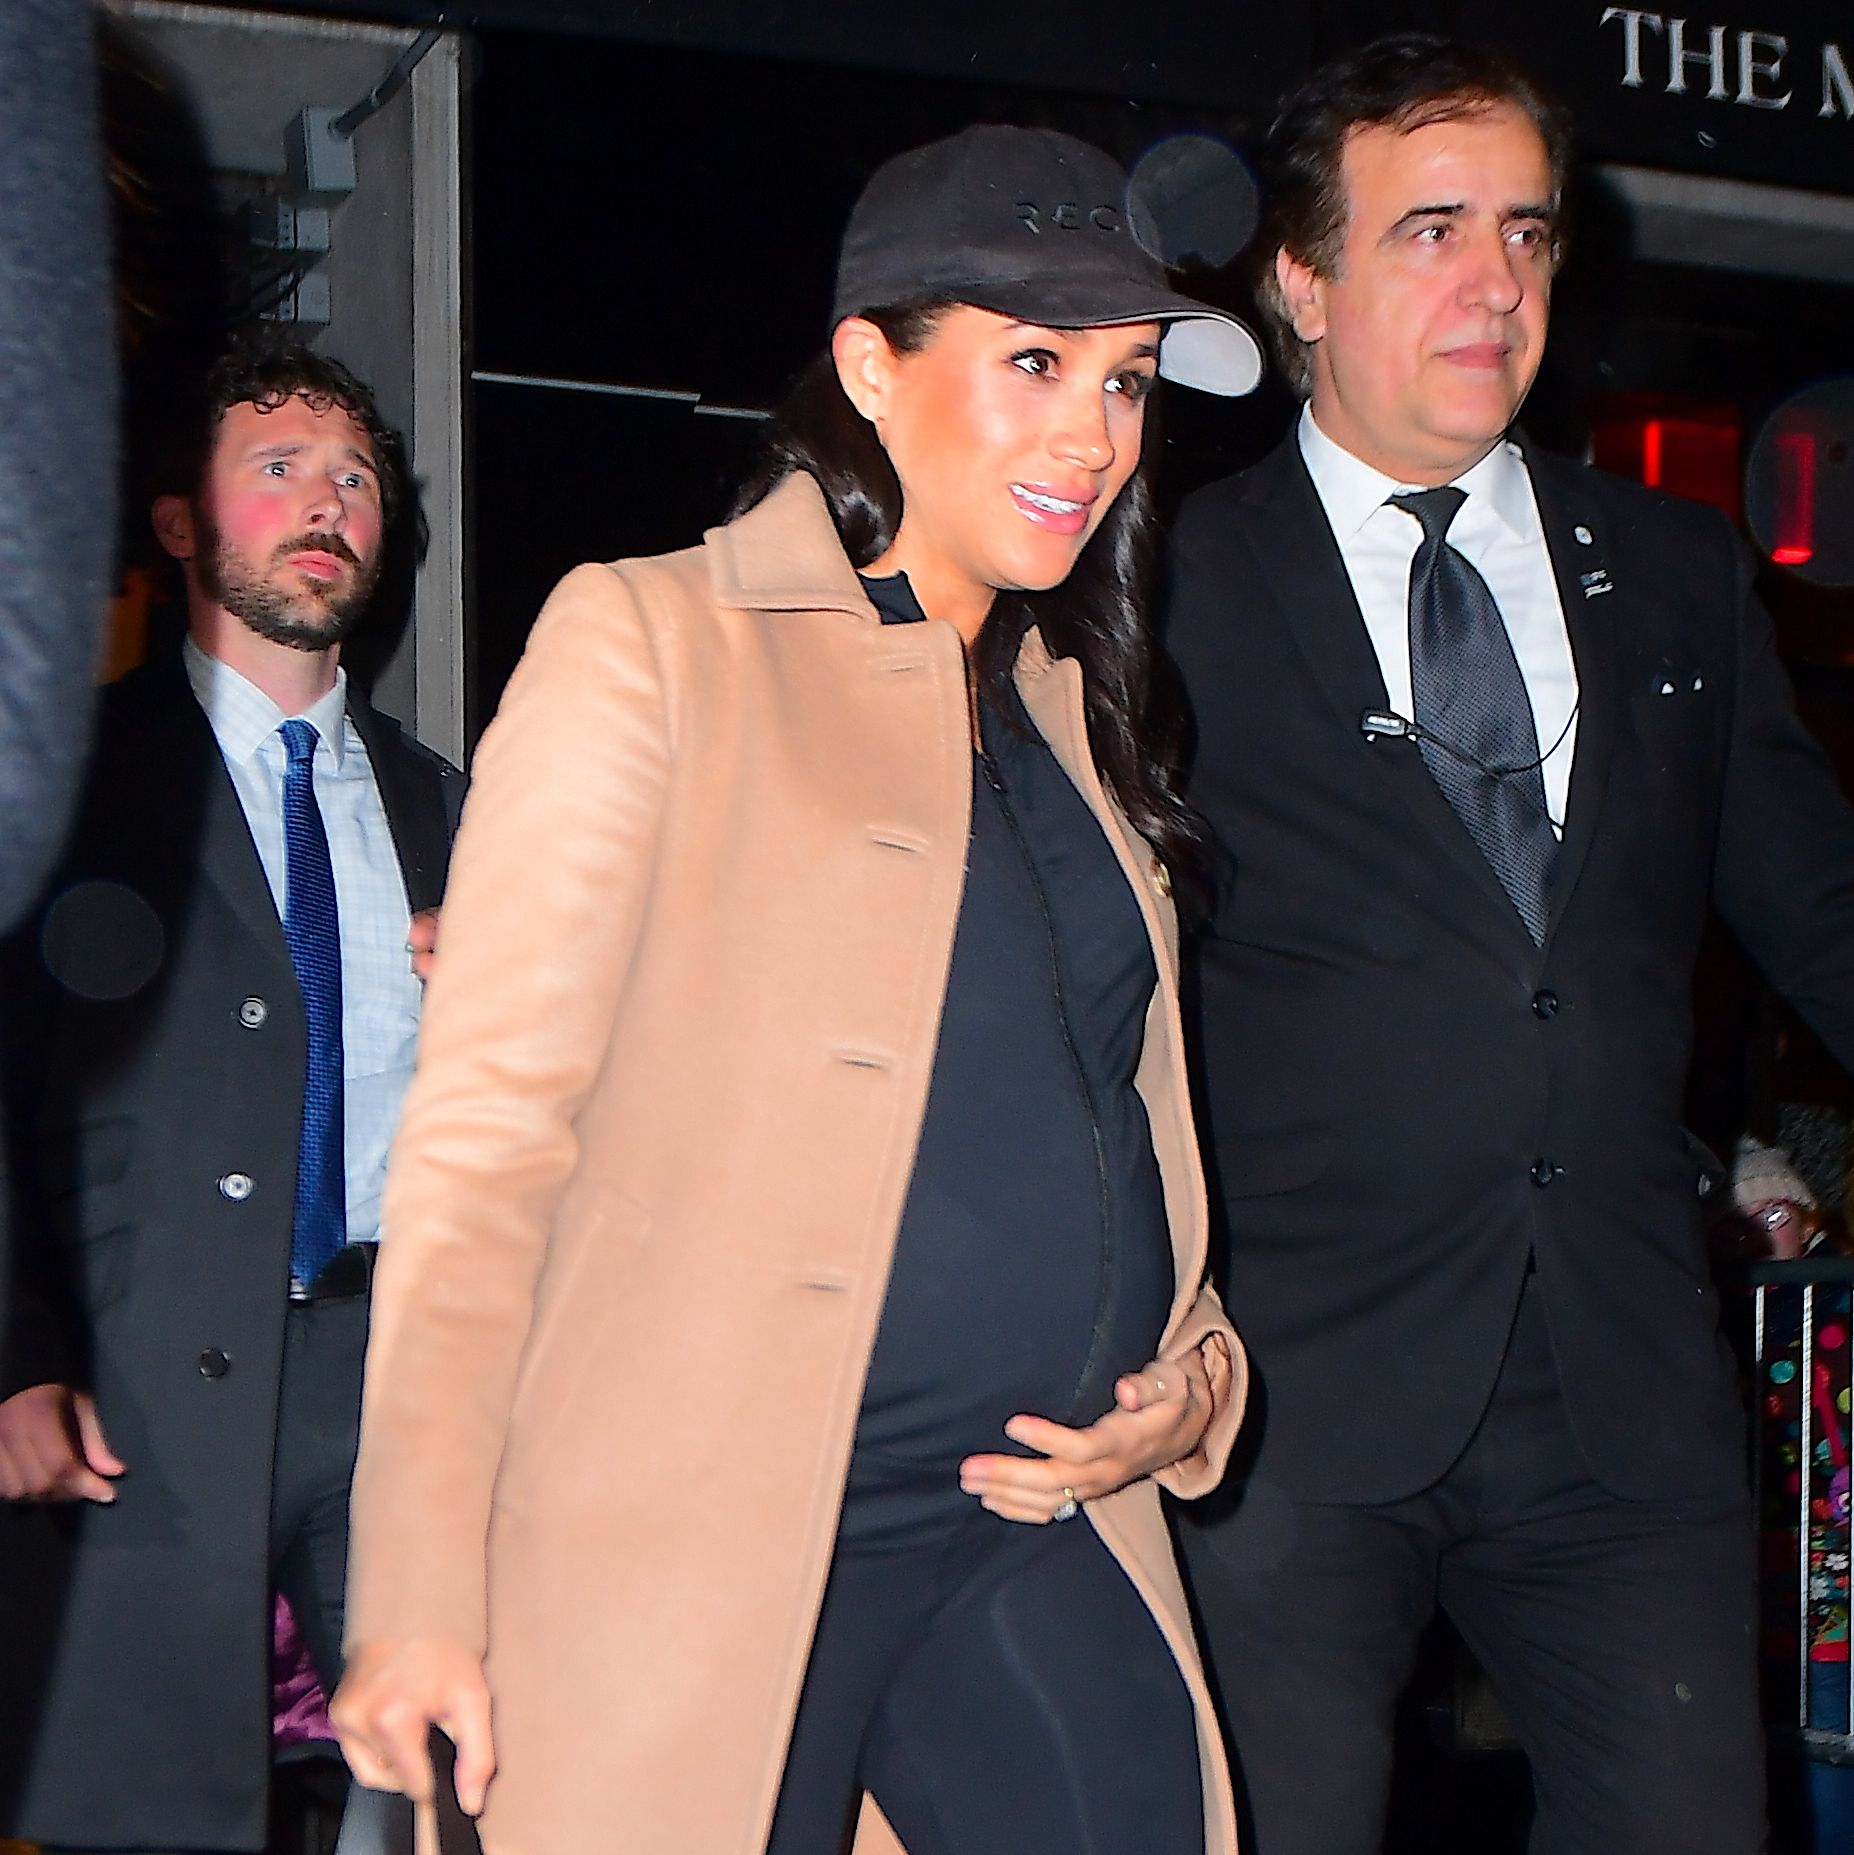 Meghan Markle Rocks a Camel Coat and Workout Gear to Return Home from Her Baby Shower